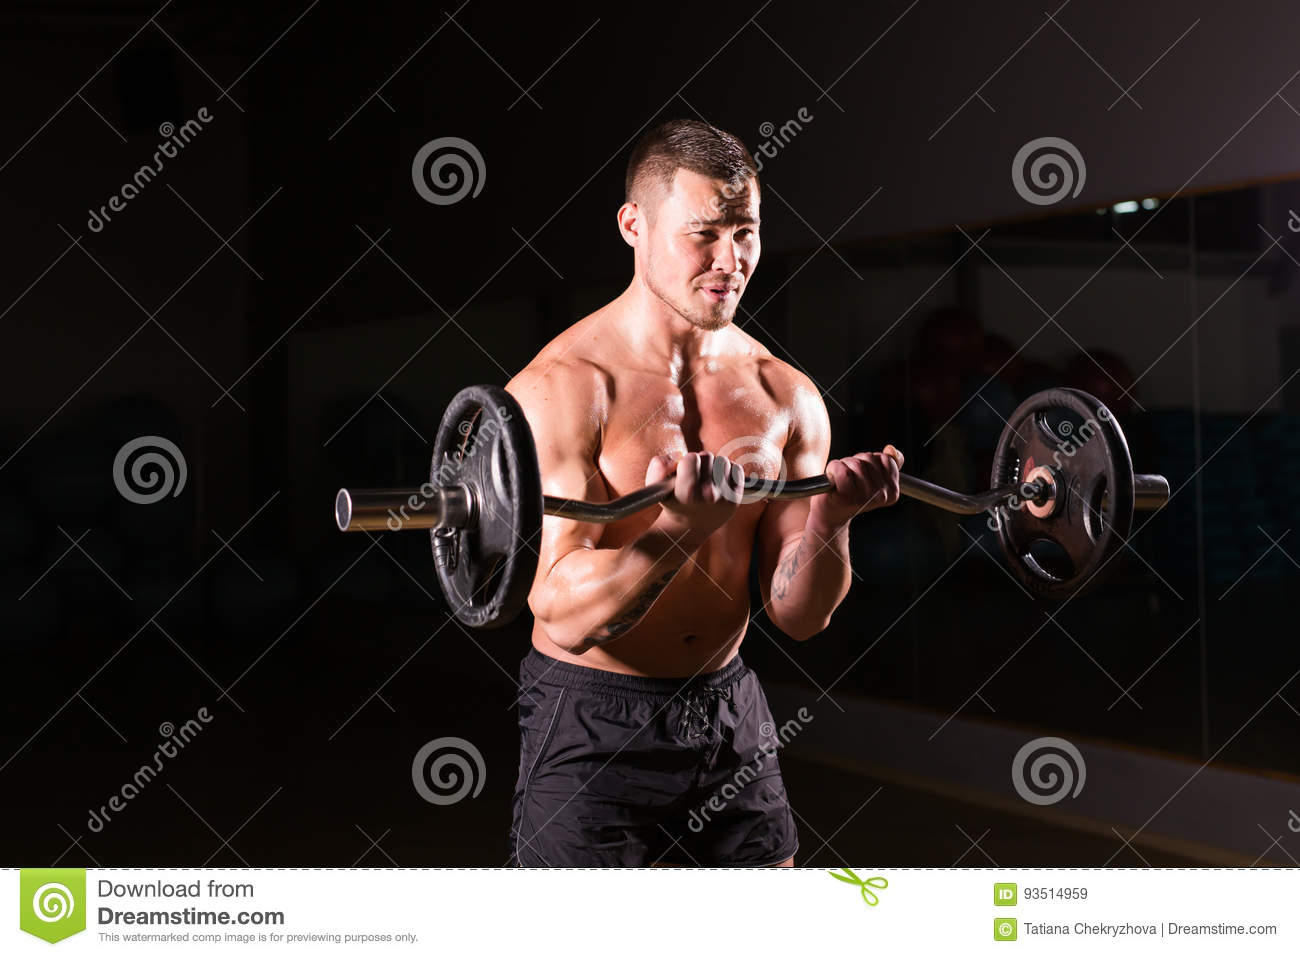 Muscular man working out in gym doing exercises with barbell, strong male naked torso abs.